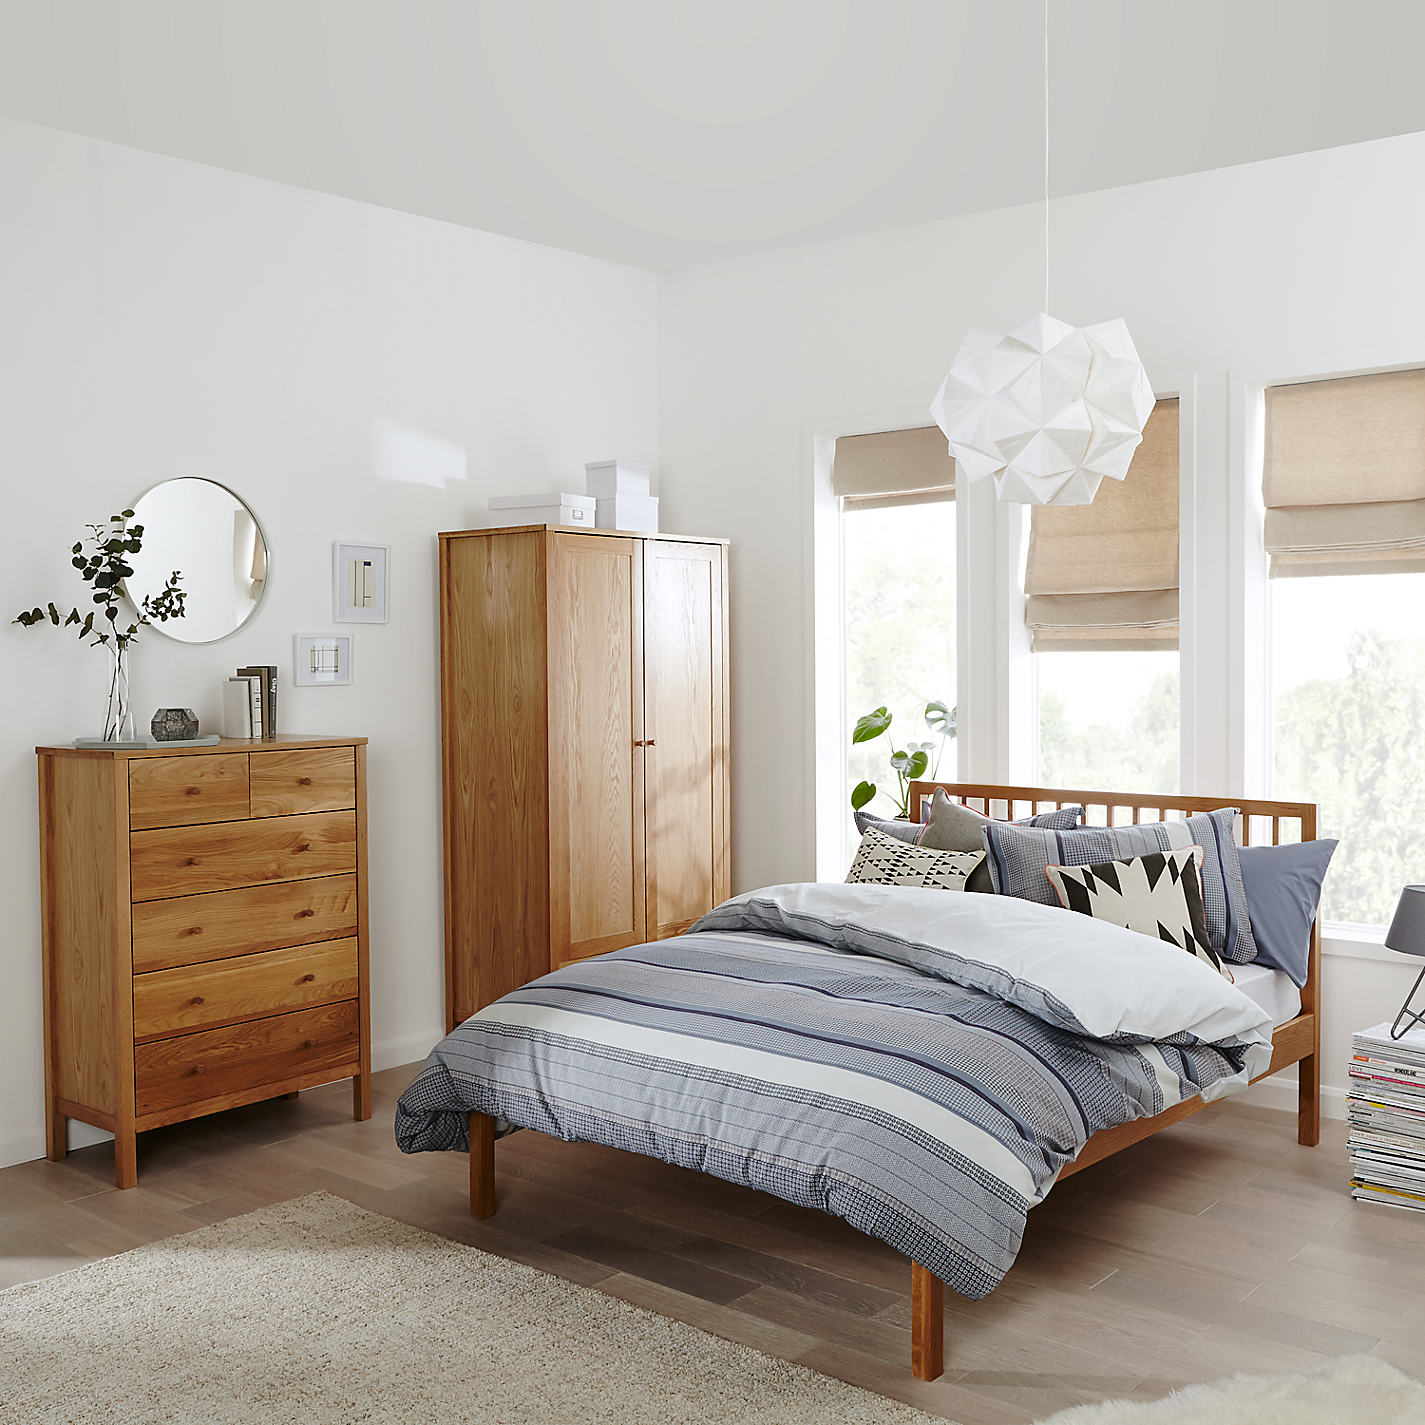 Stylish bedroom furniture john lewis ideas fashdea for John lewis bedroom ideas